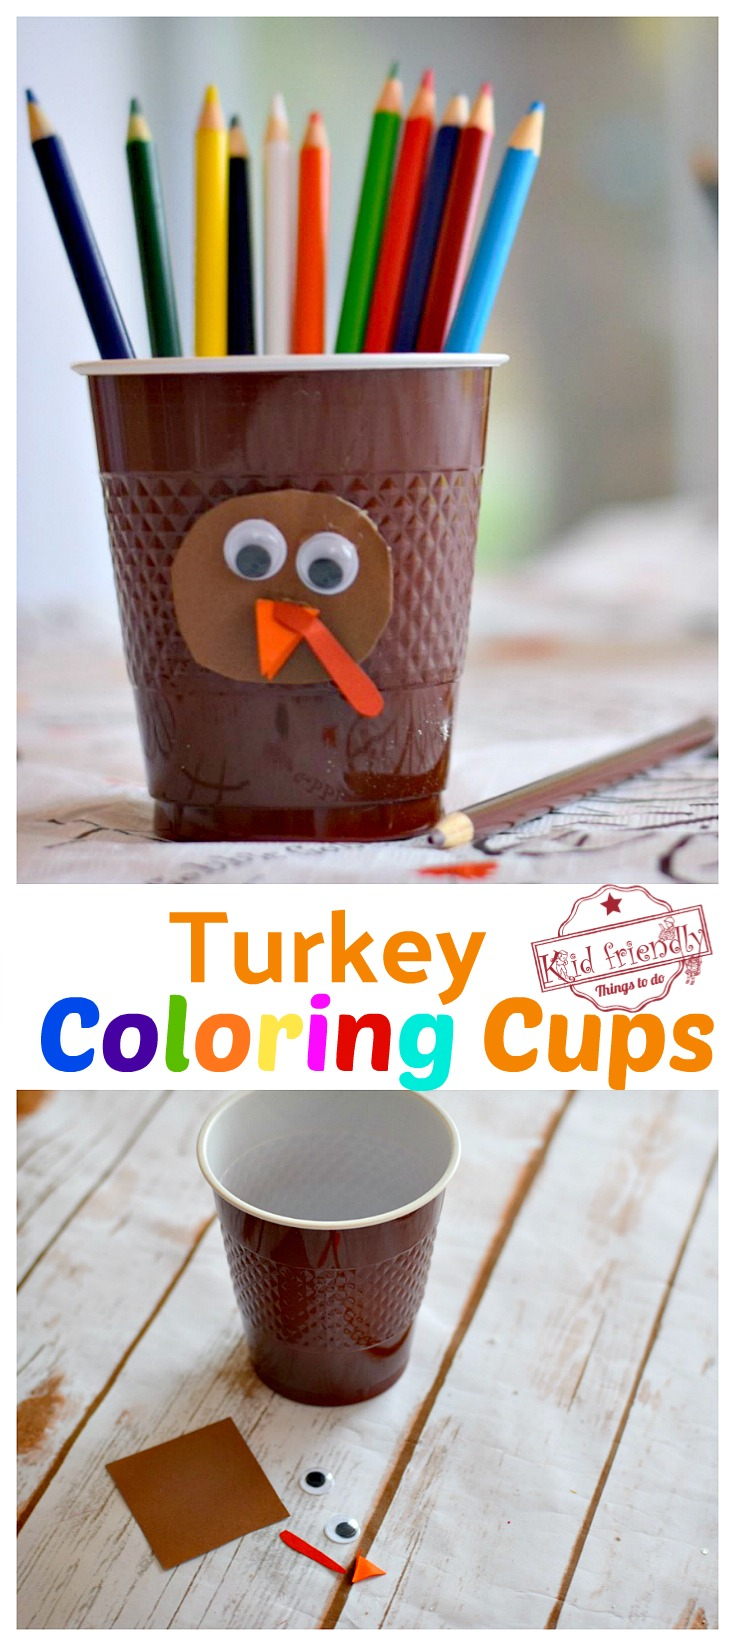 Adorable and Easy DIY Turkey Coloring Cups for the Kids at the Thanksgiving Table - Simple craft and activity - www.kidfriendlythingstodo.com